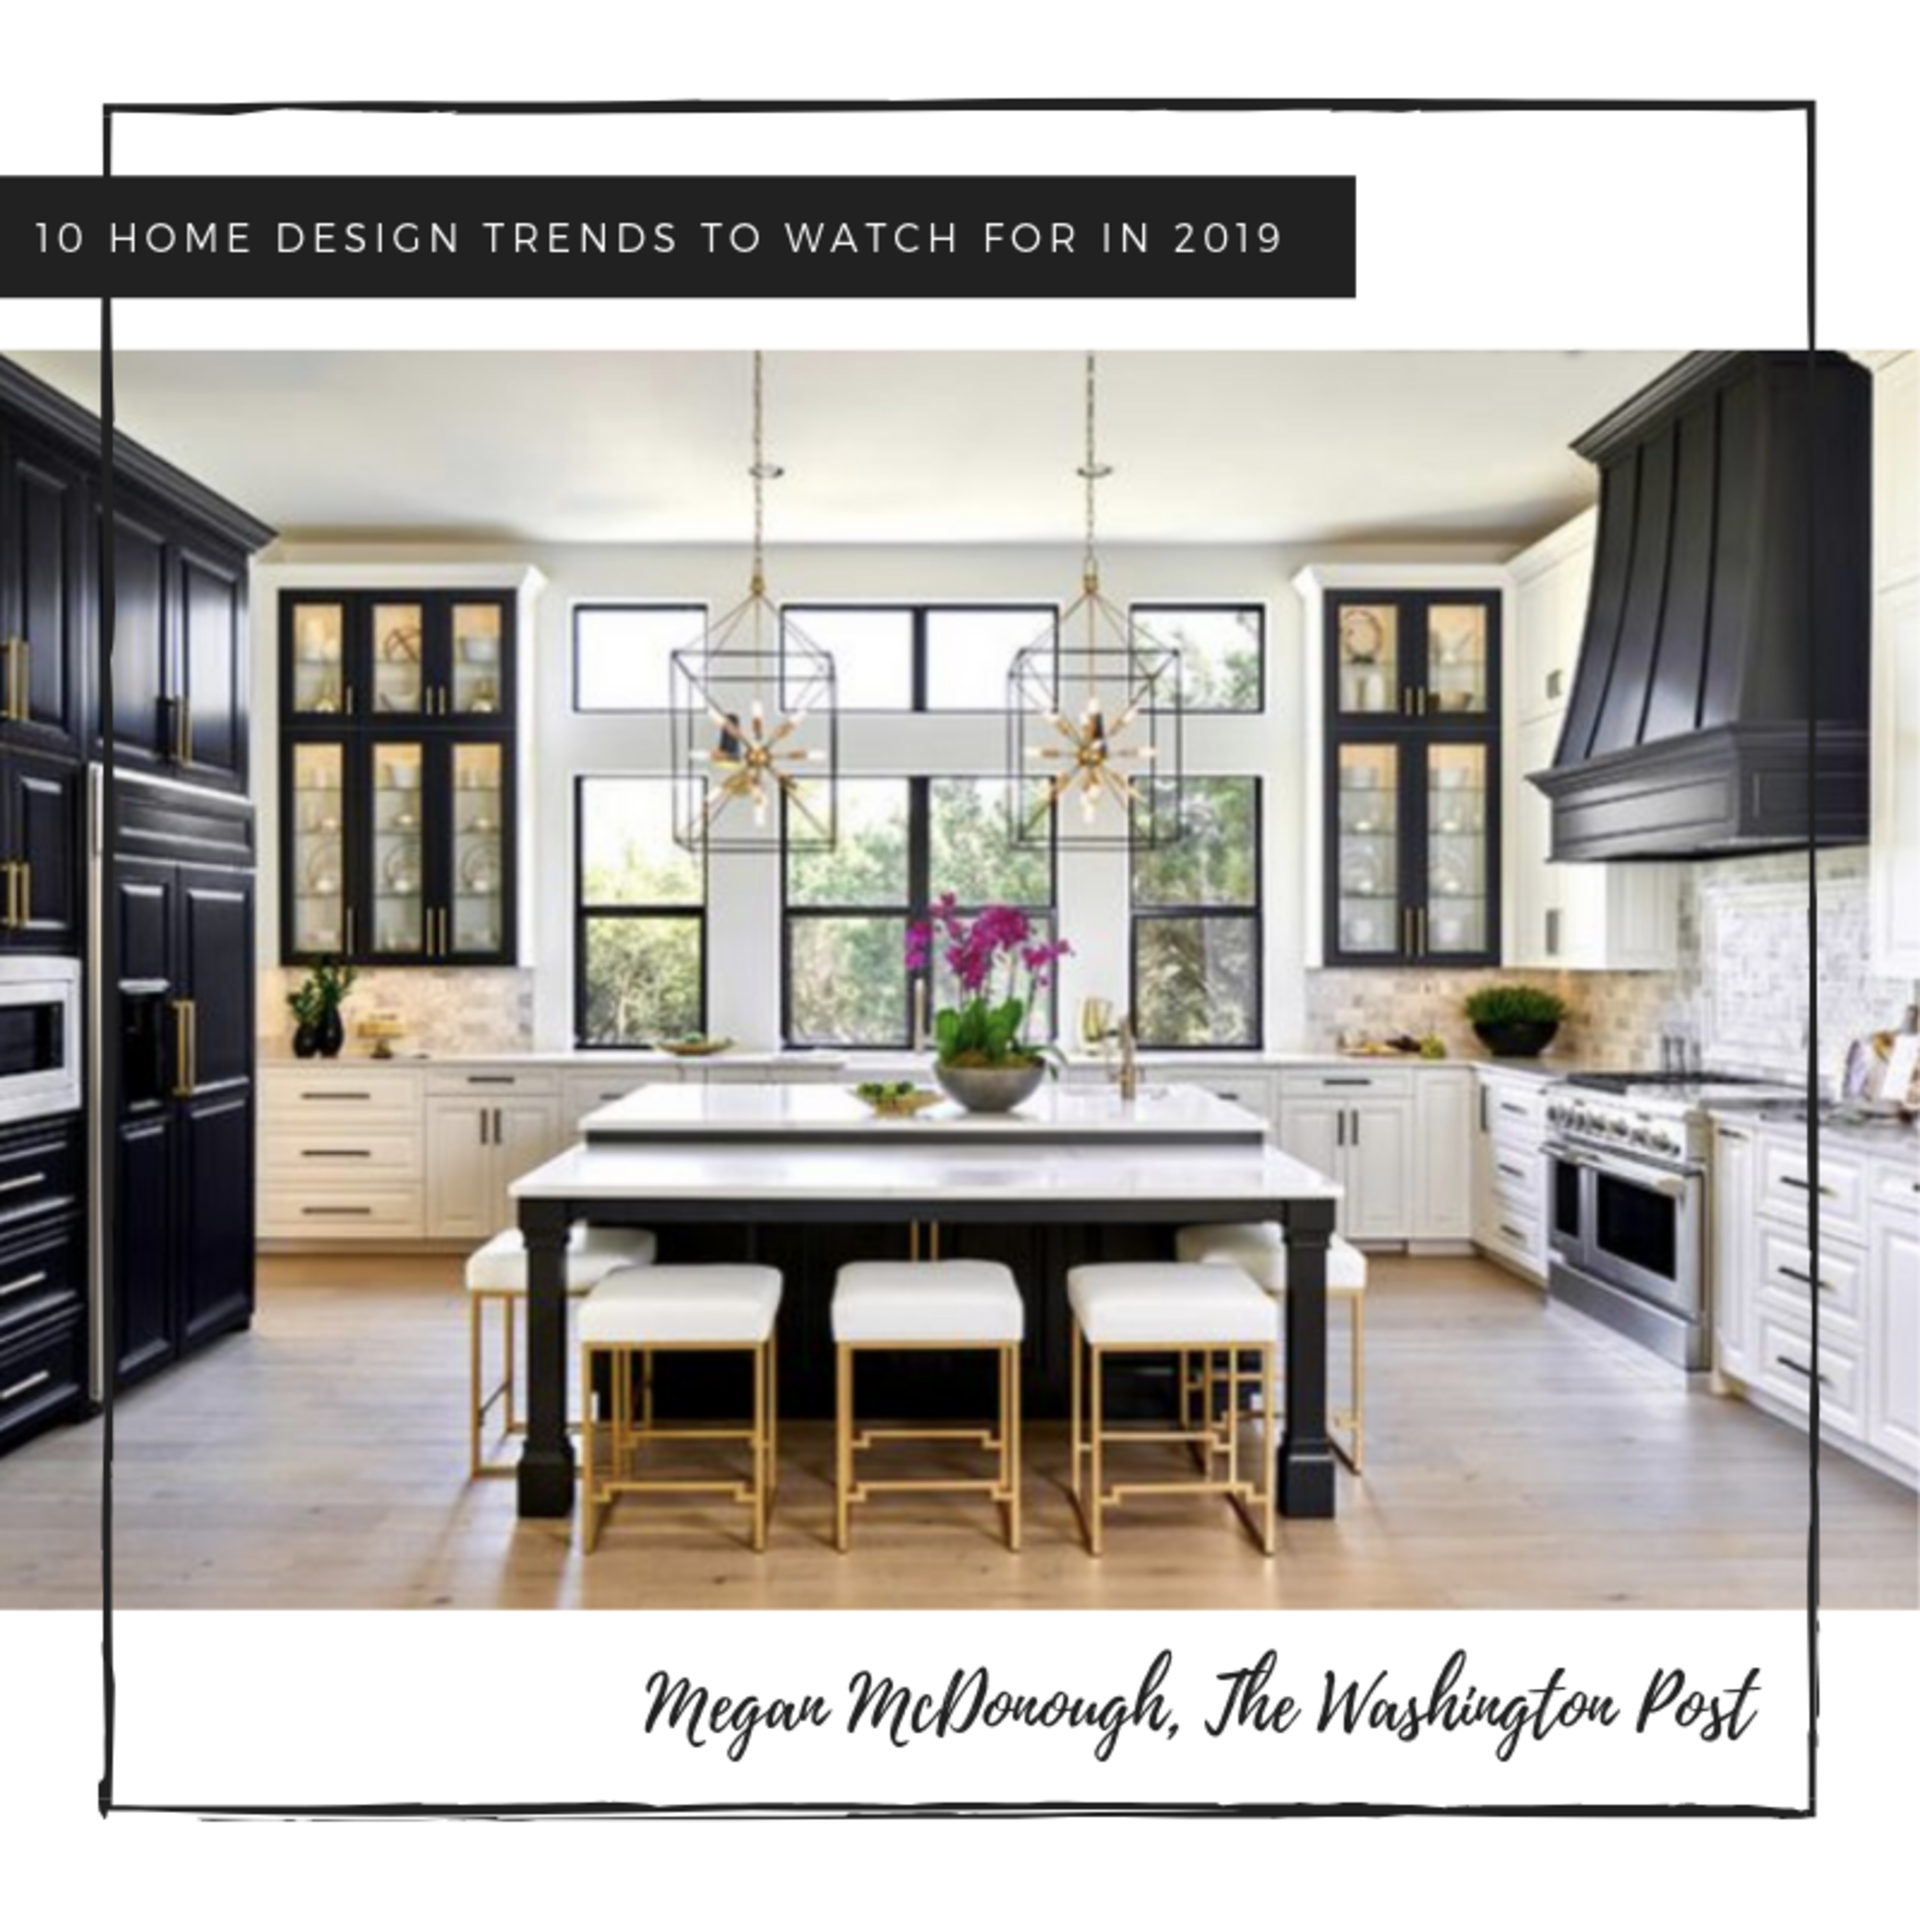 10 Home Design Trends To Look Out For in 2019!